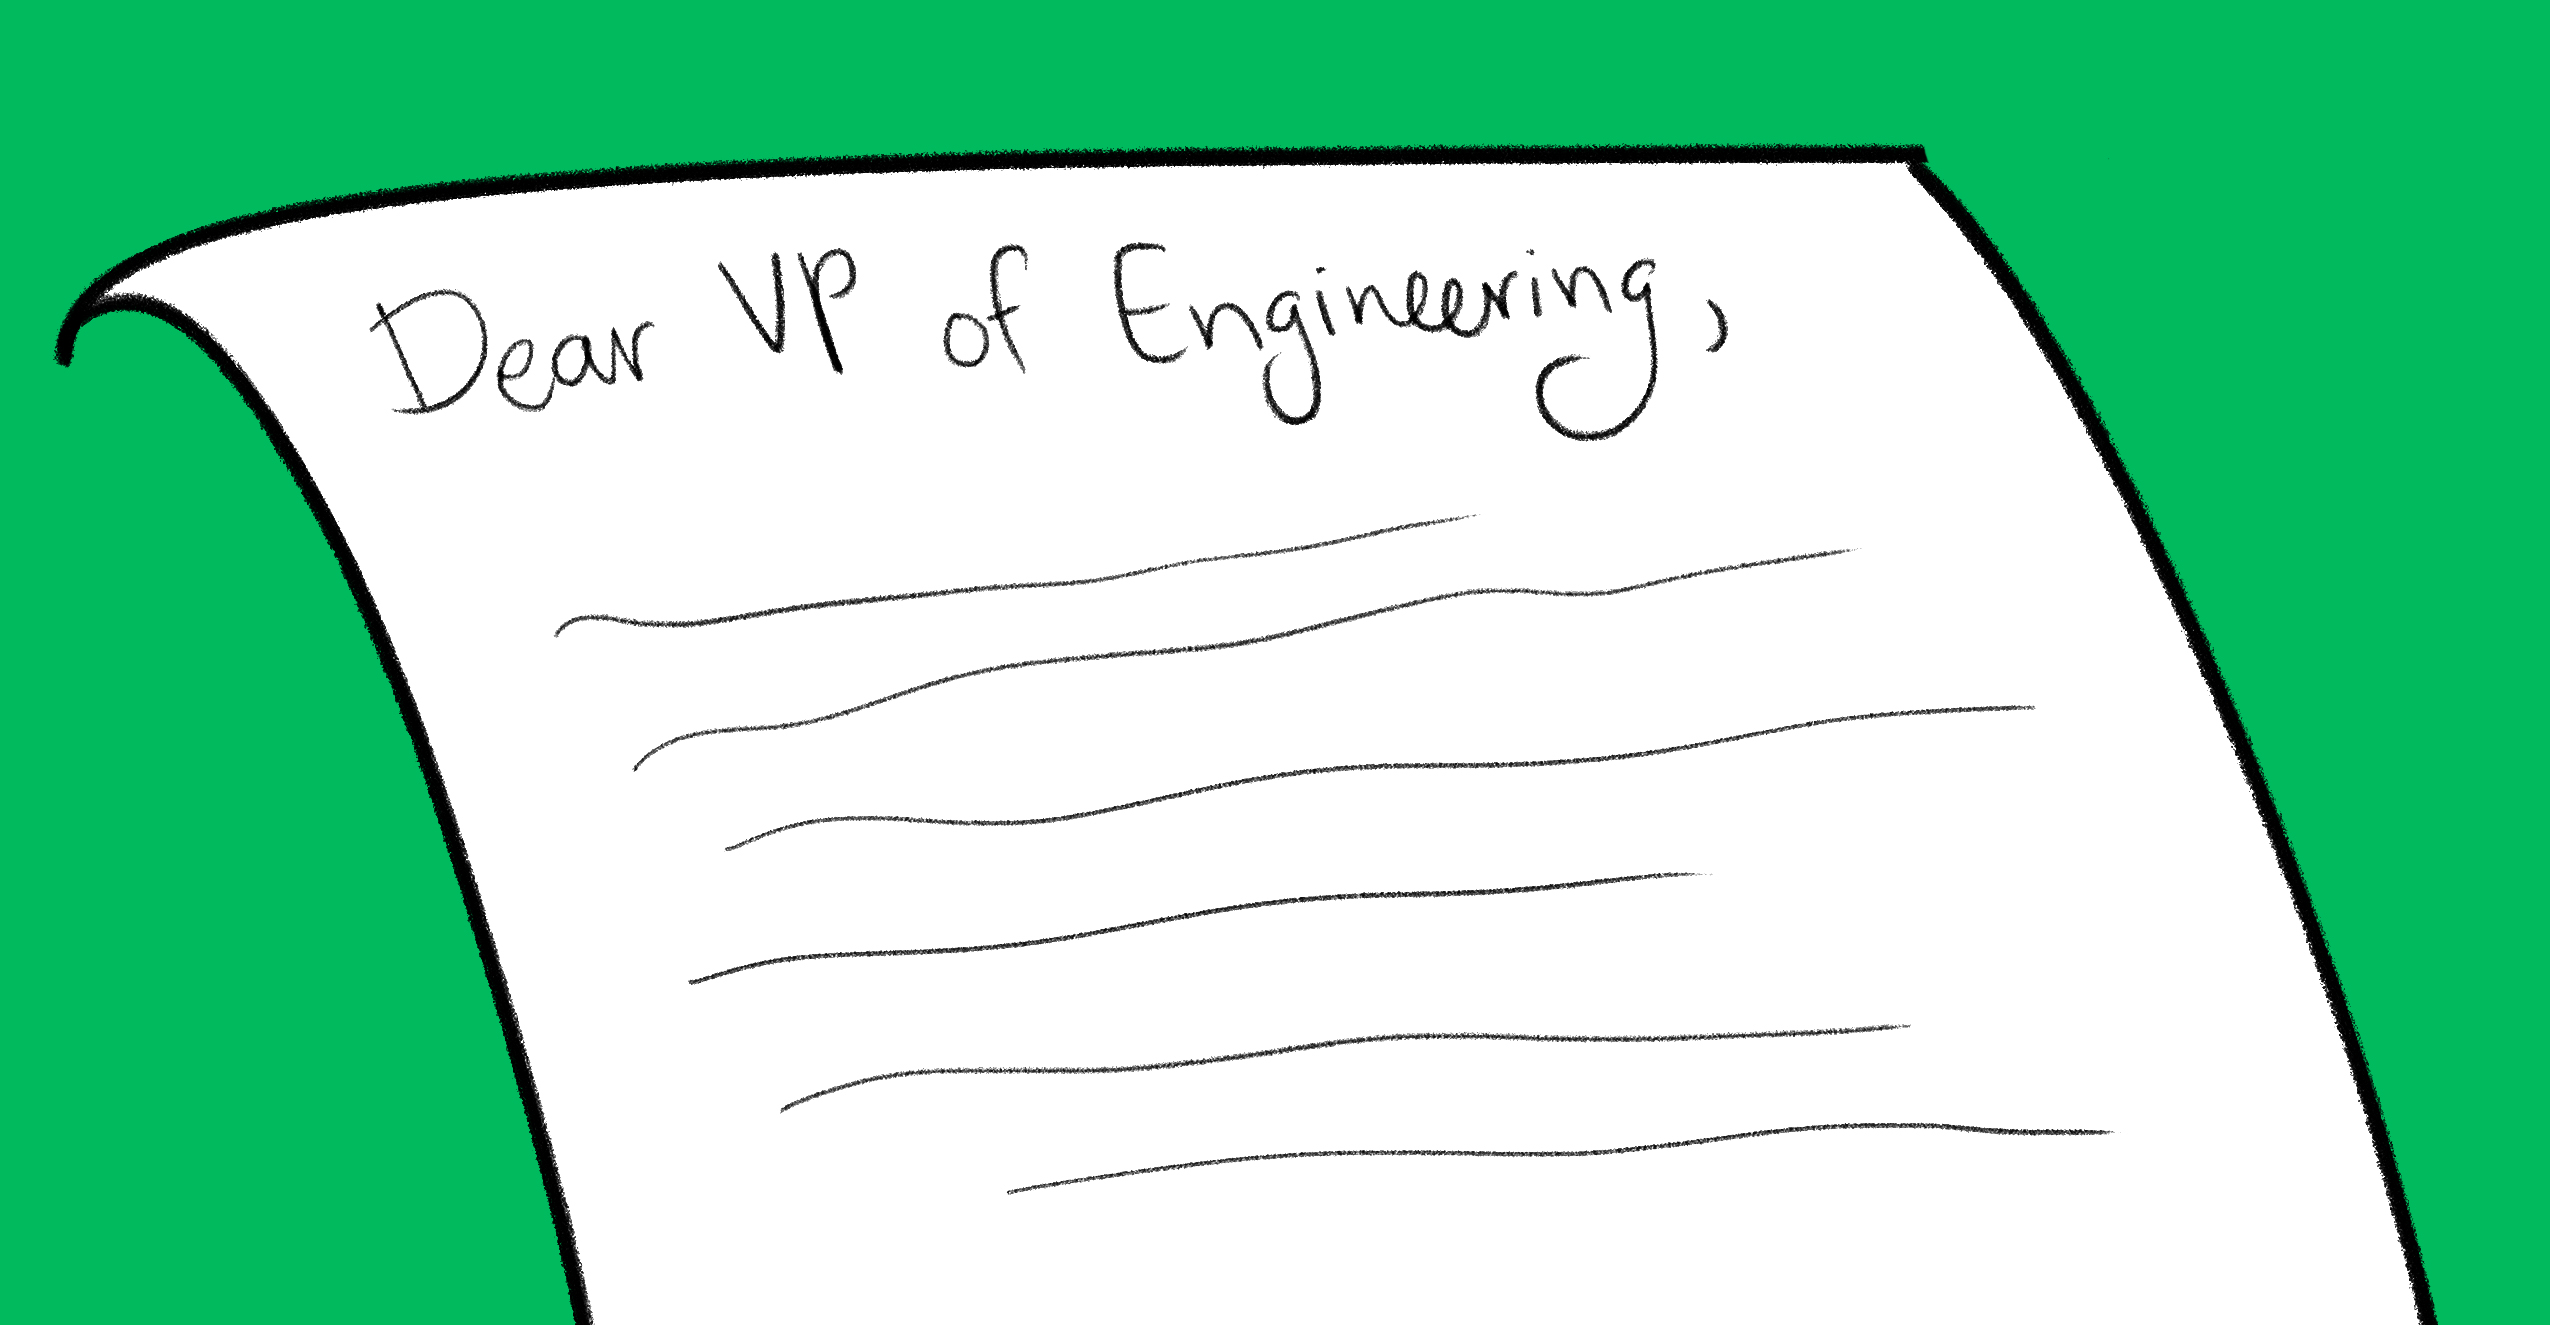 Dear VP of Engineering